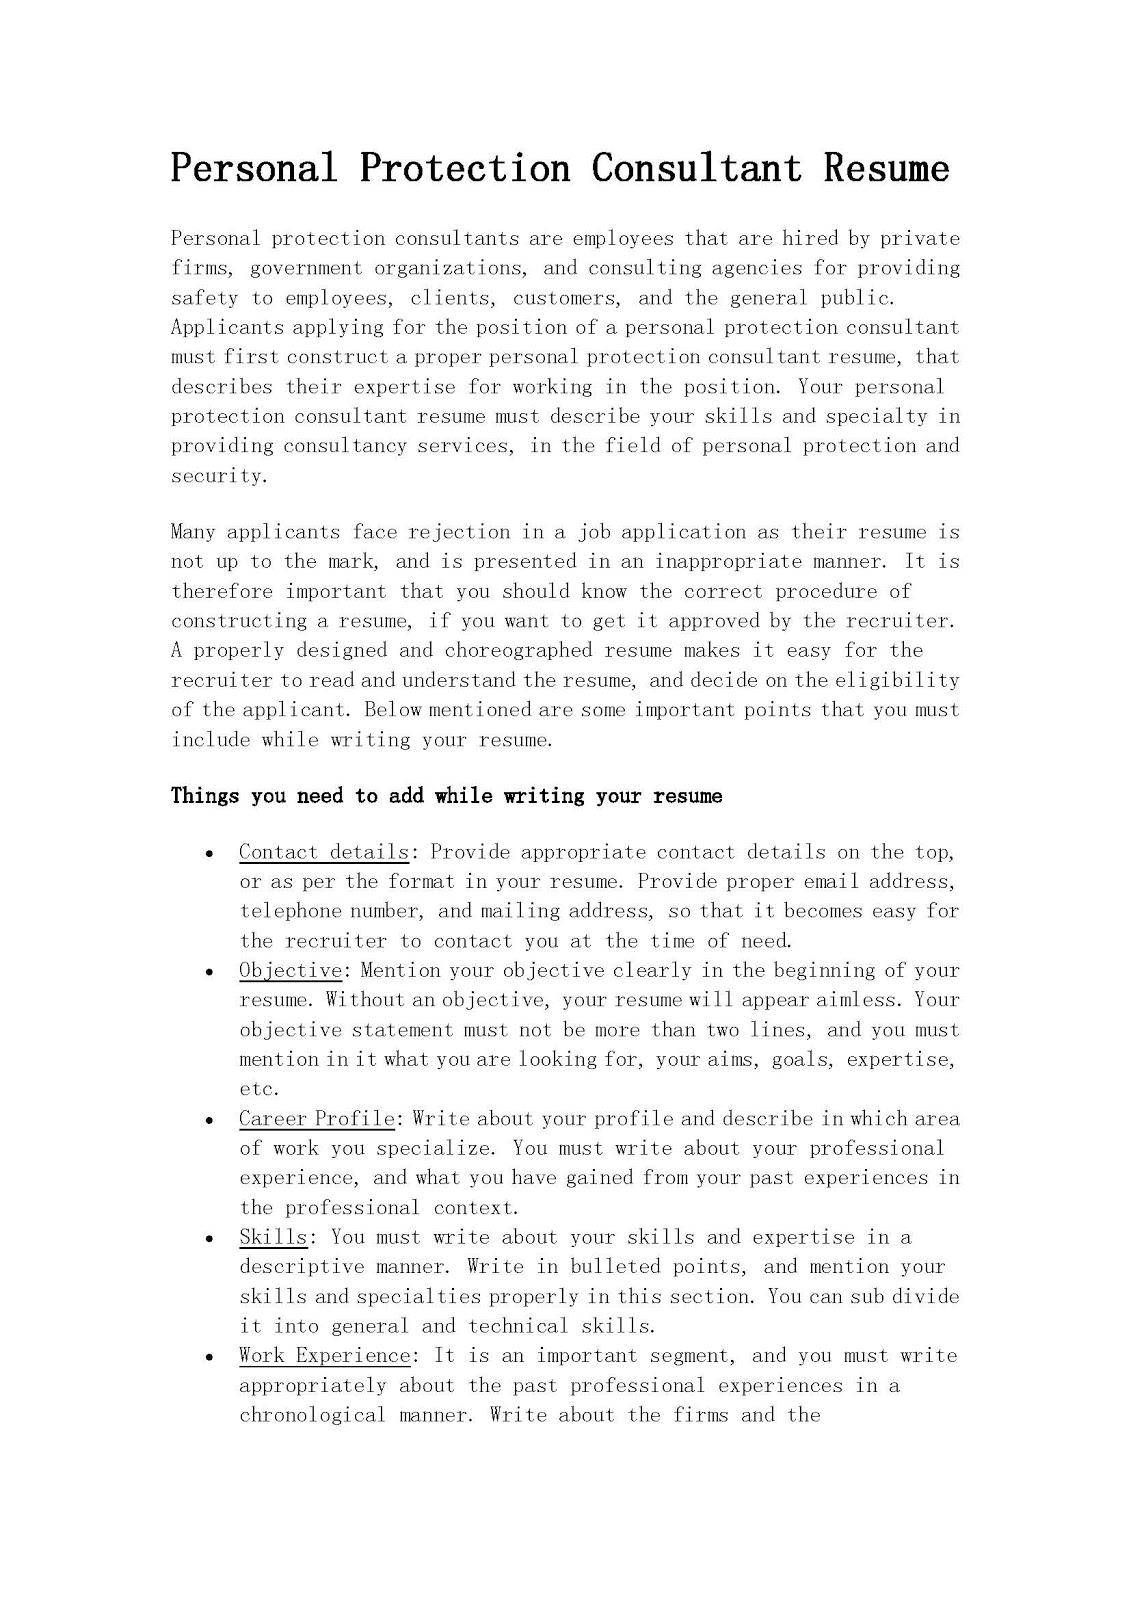 Amazing 100 Day Plan Template Tall 1099 Agreement Template Regular 16 Birthday Invitation Templates 1st Job Resume Template Young 2 Column Notes Template Pink2 Forms Of Resume Brand Consultant Resume Sample | Resume Layouts For Word 2010